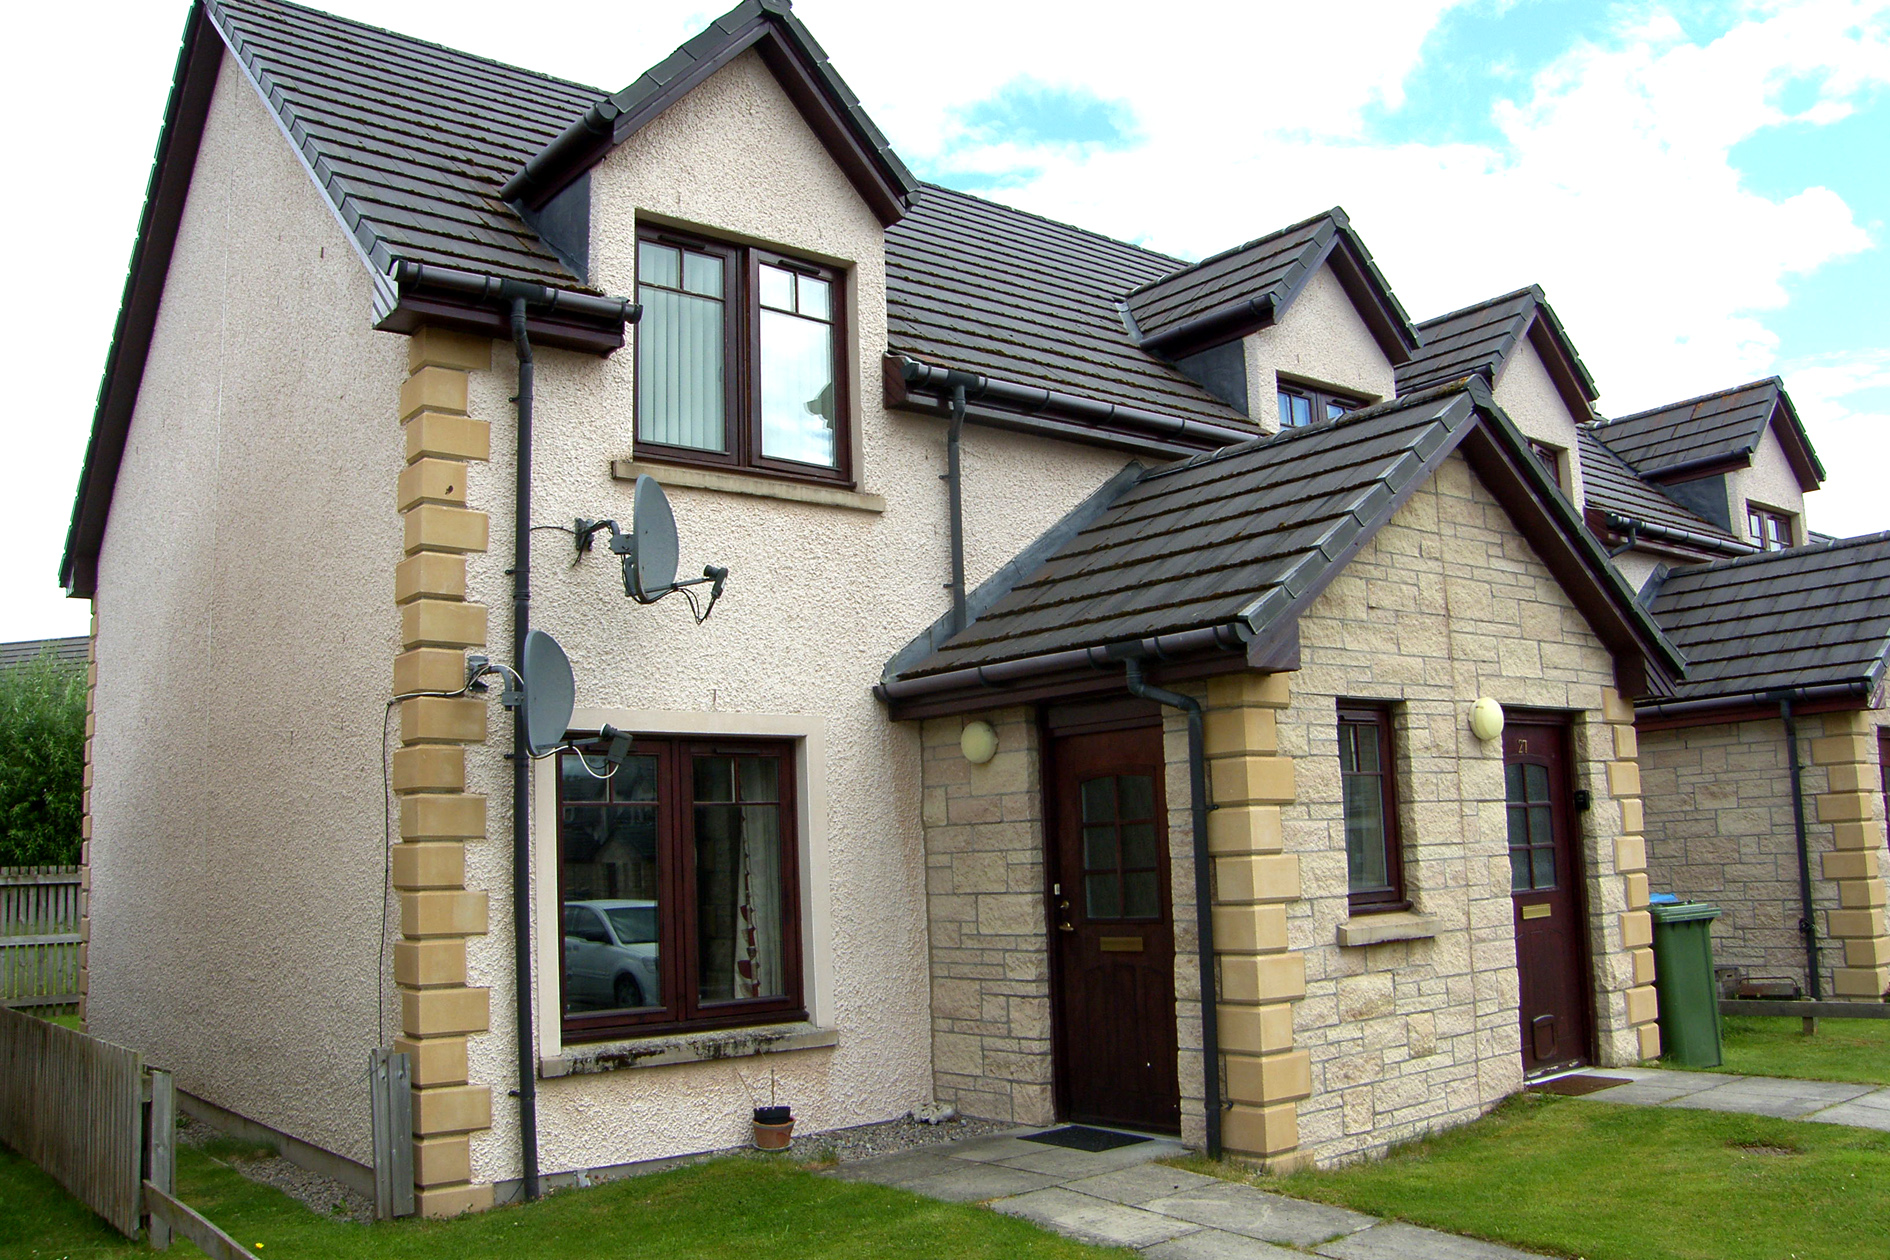 2 Bedrooms Apartment Flat for sale in Corbett Place, Aviemore, PH22 1NZ